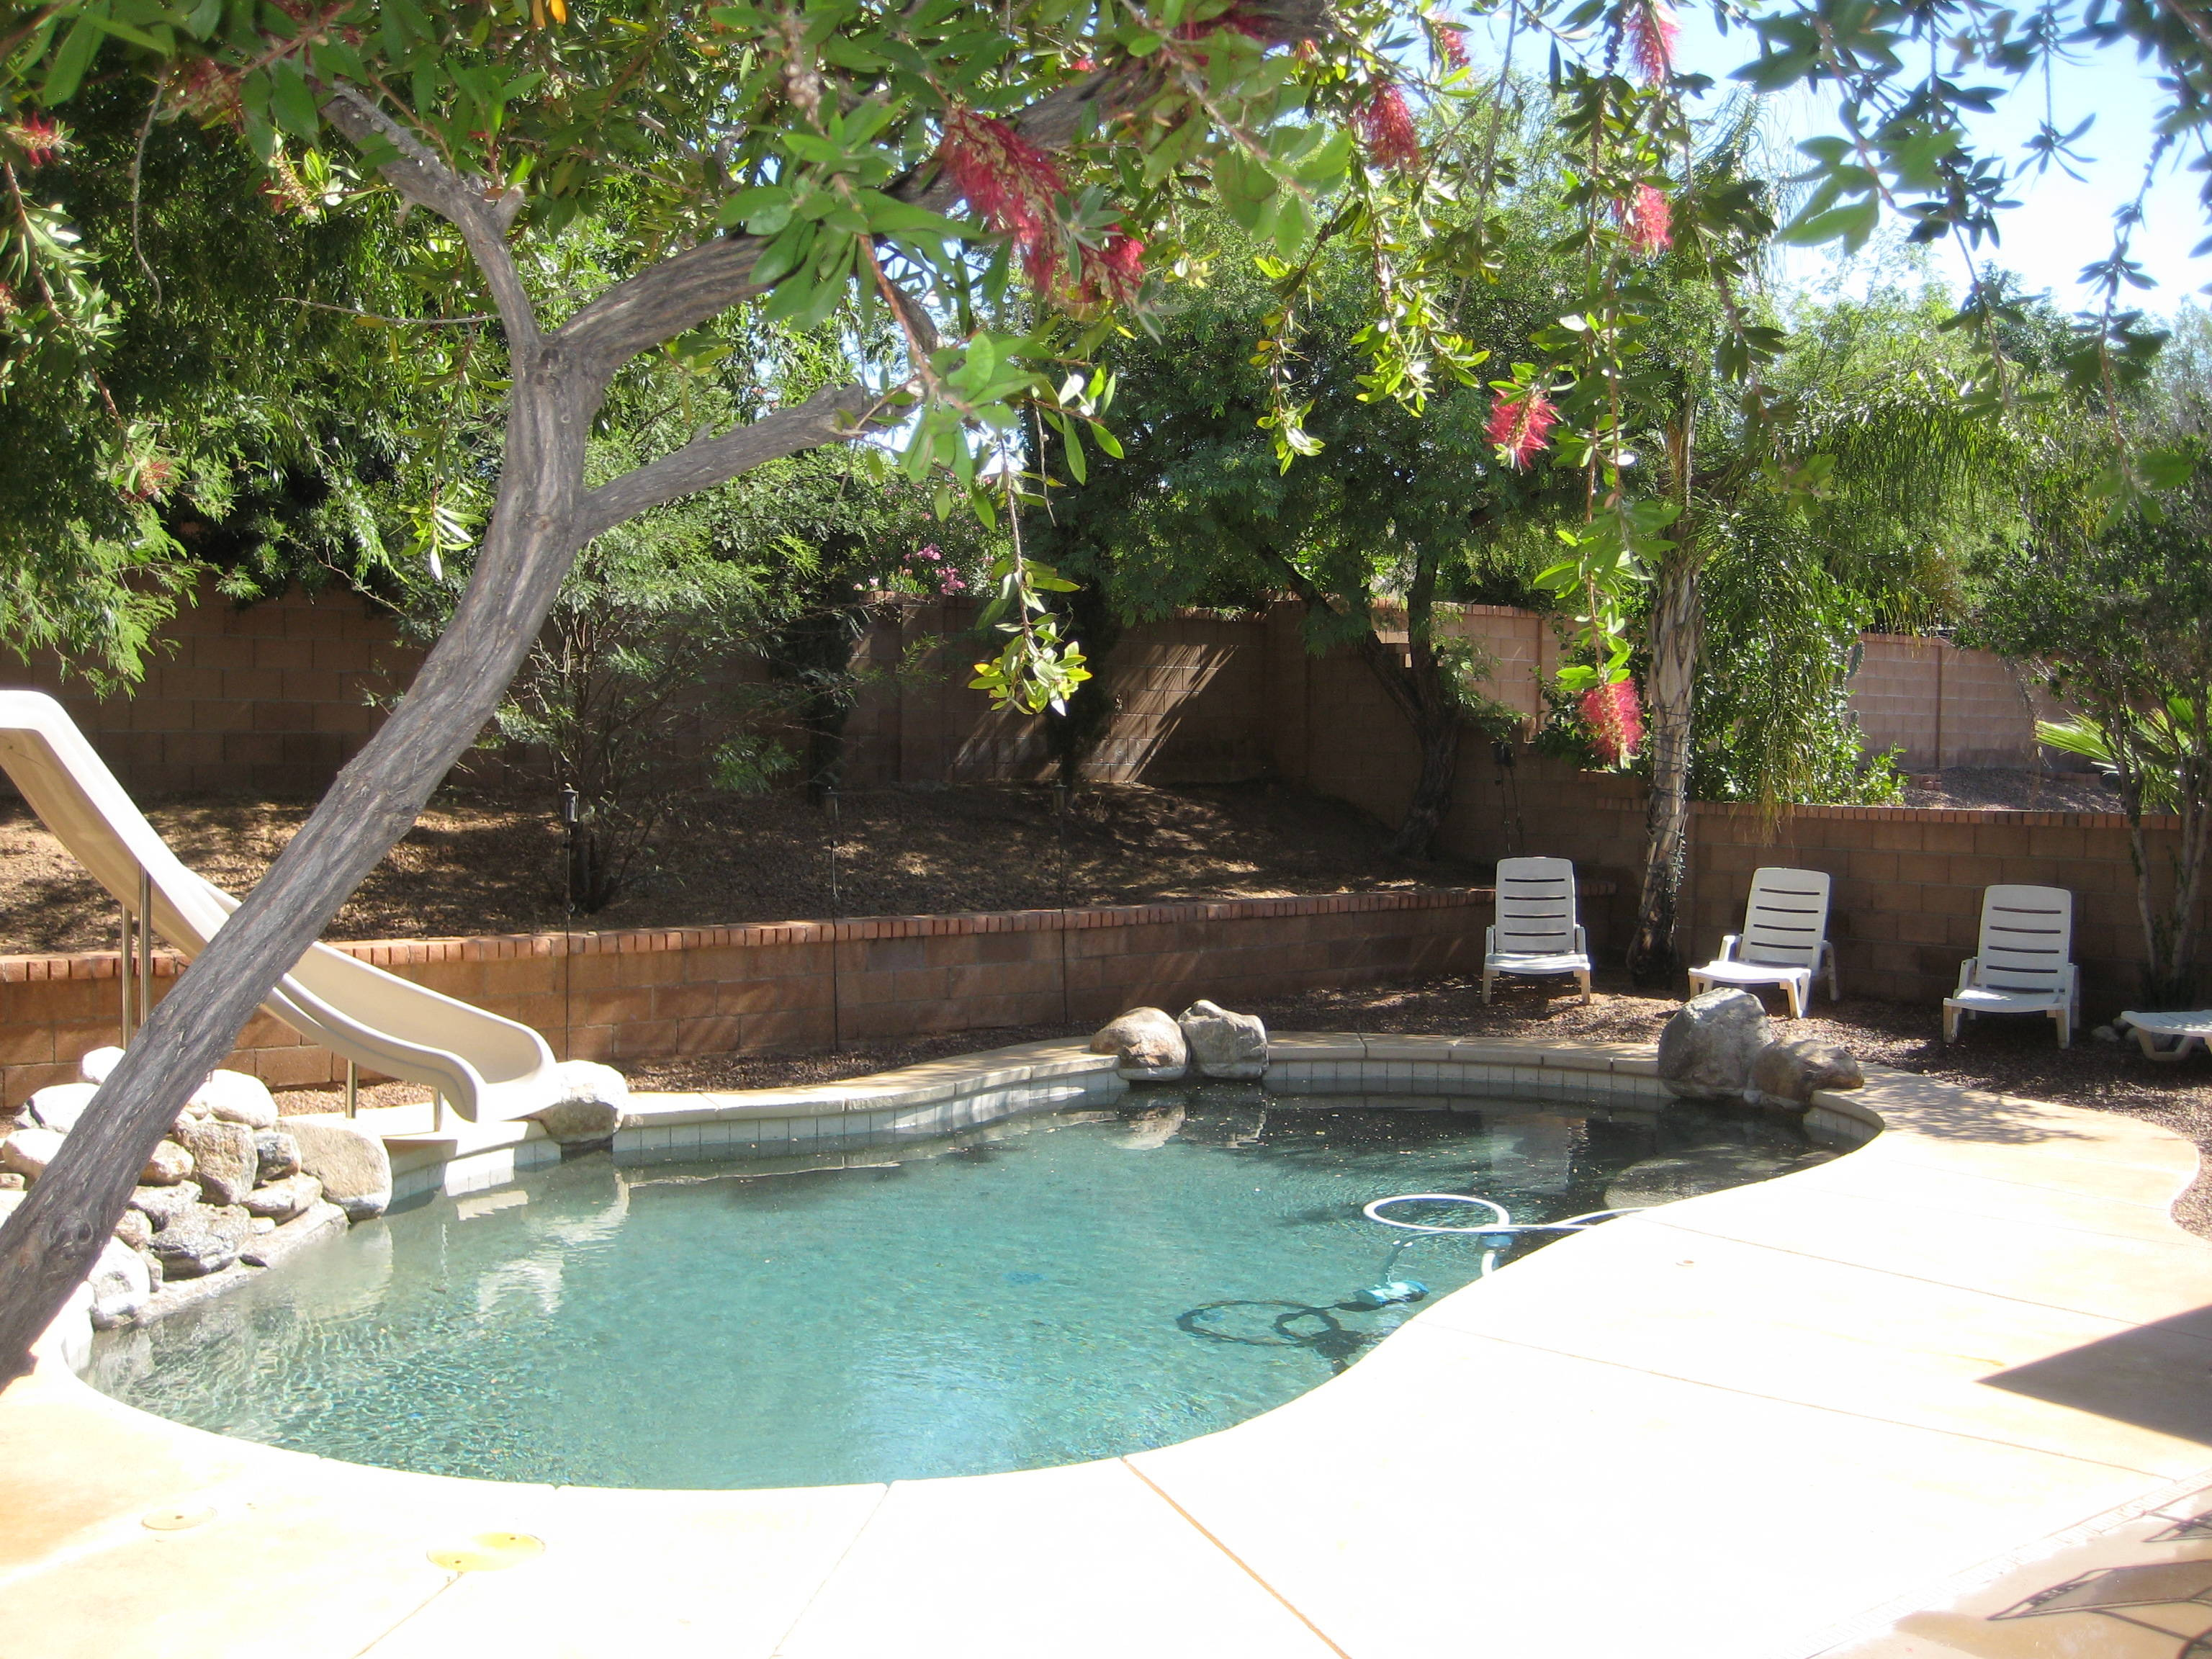 3 Bedroom Home For Sale in NW Tucson: 3192 W Avior Lane